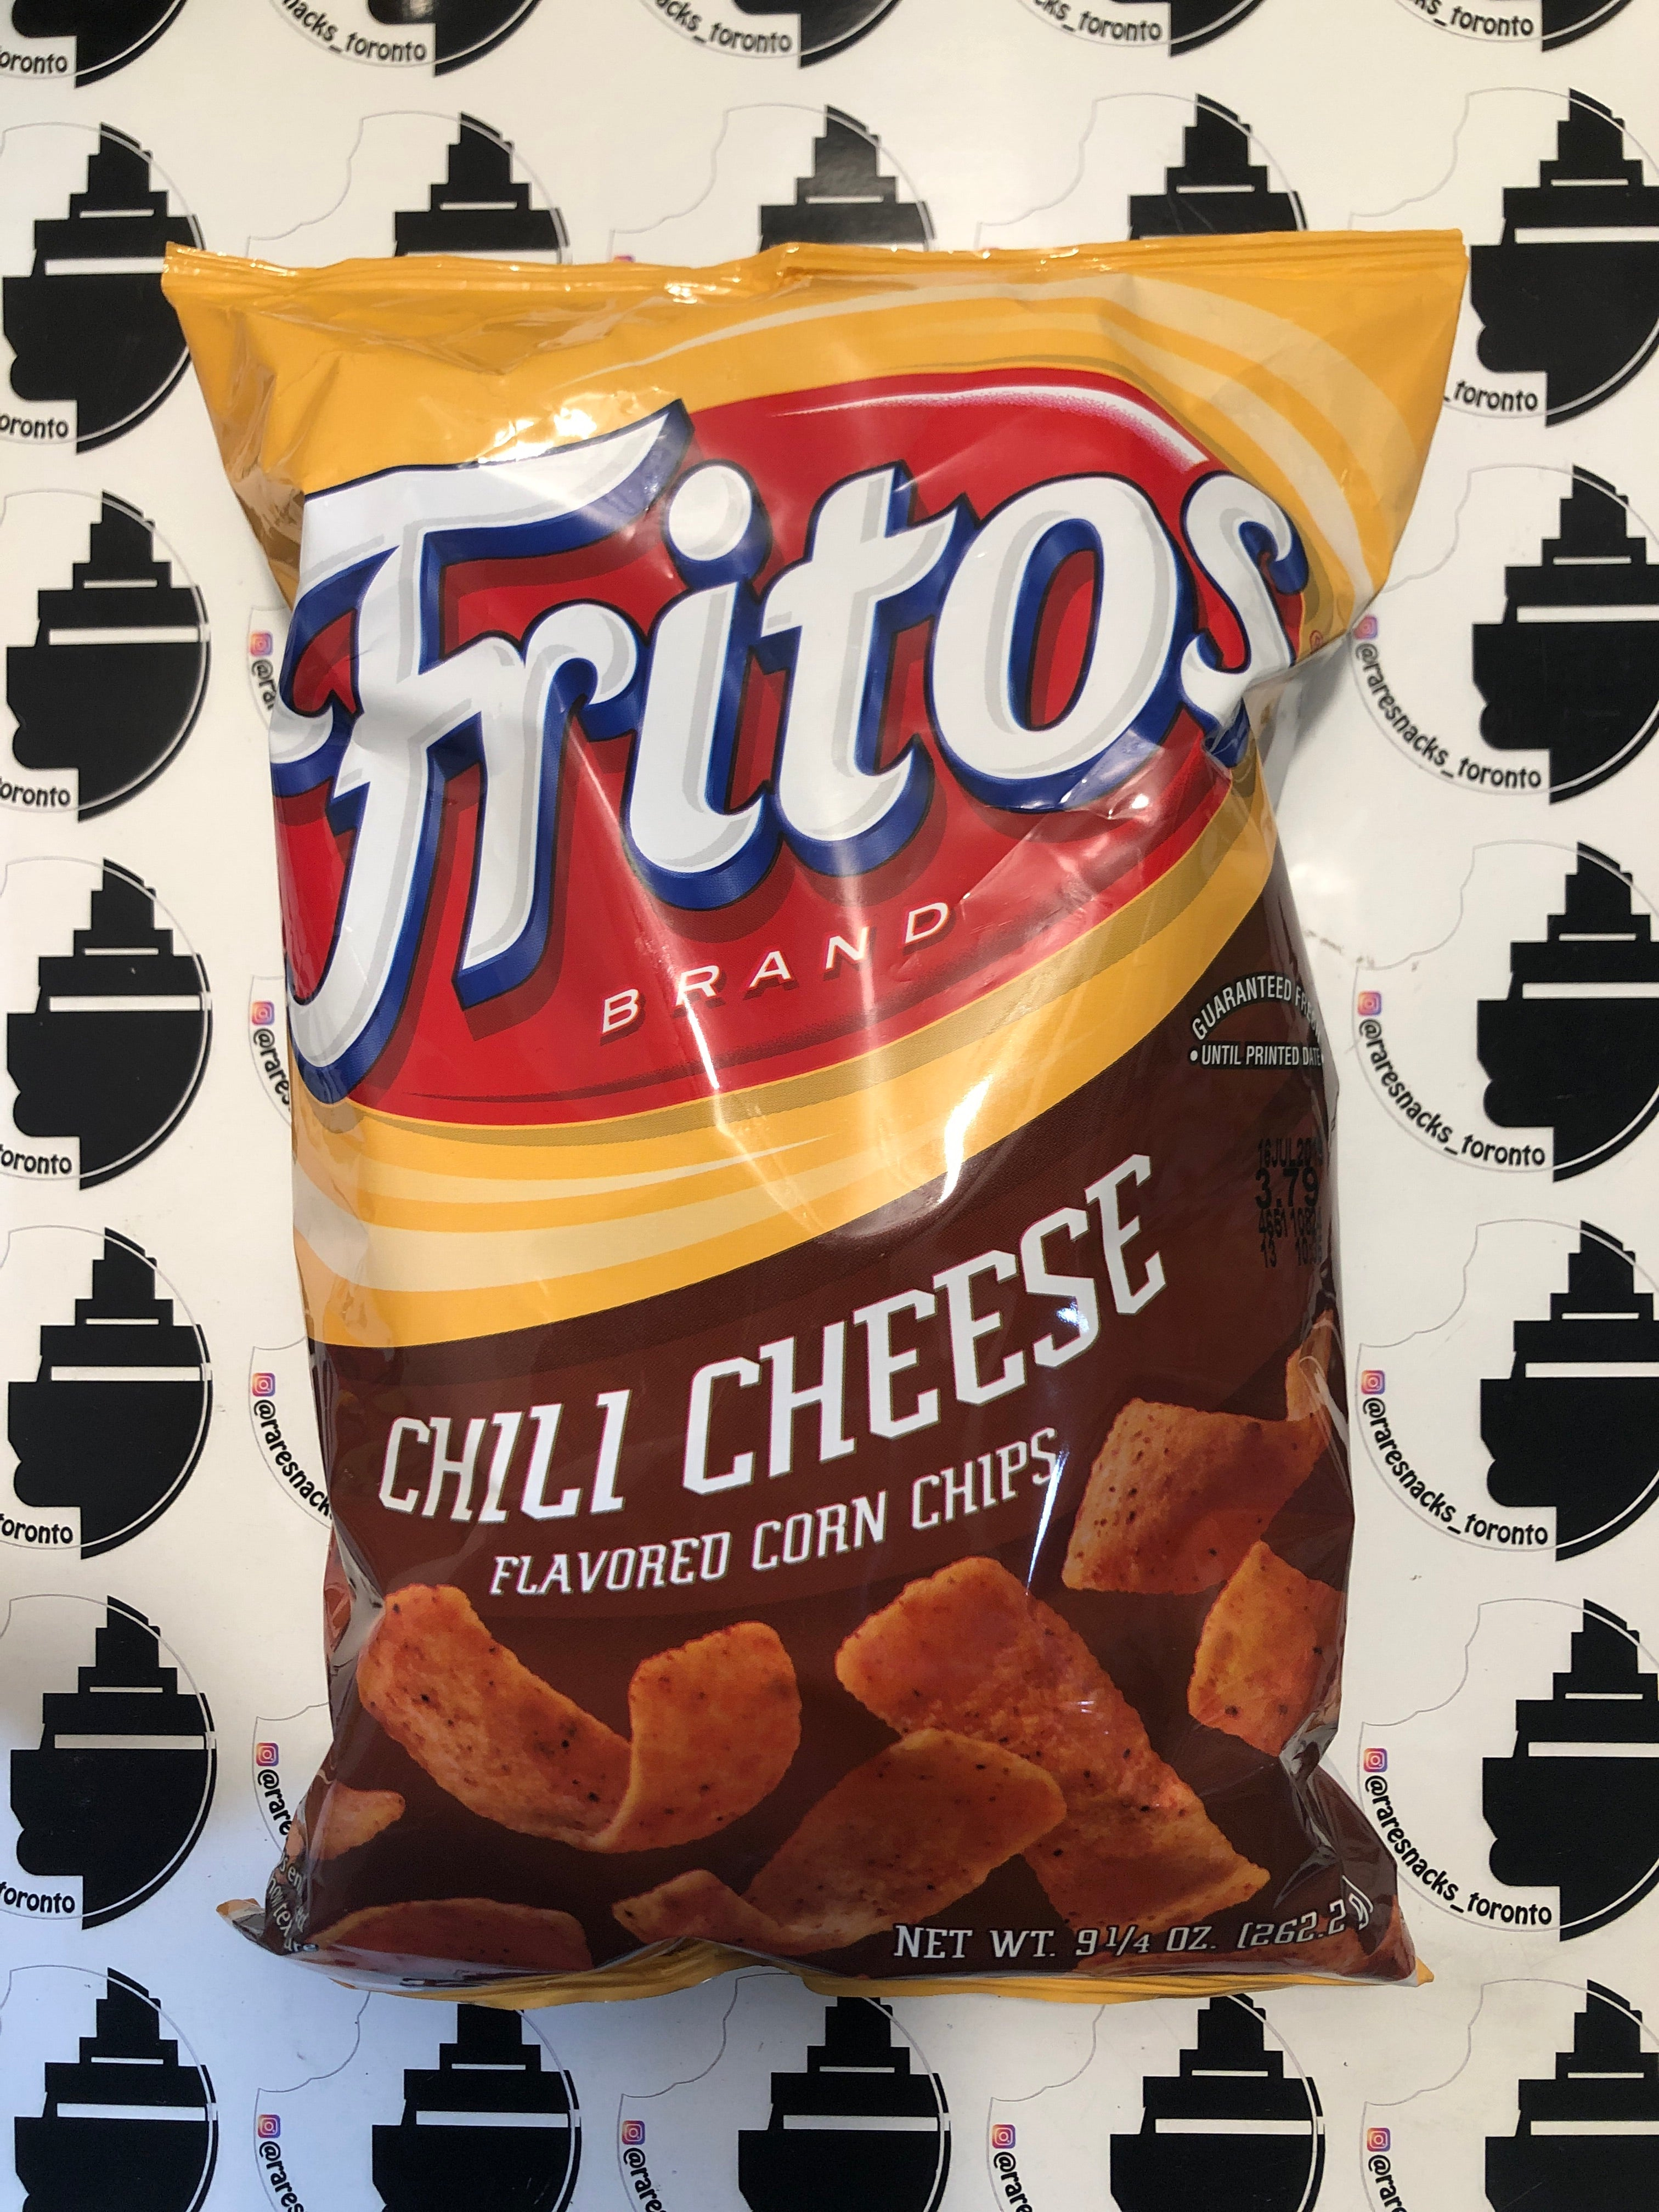 Fritos chili cheese